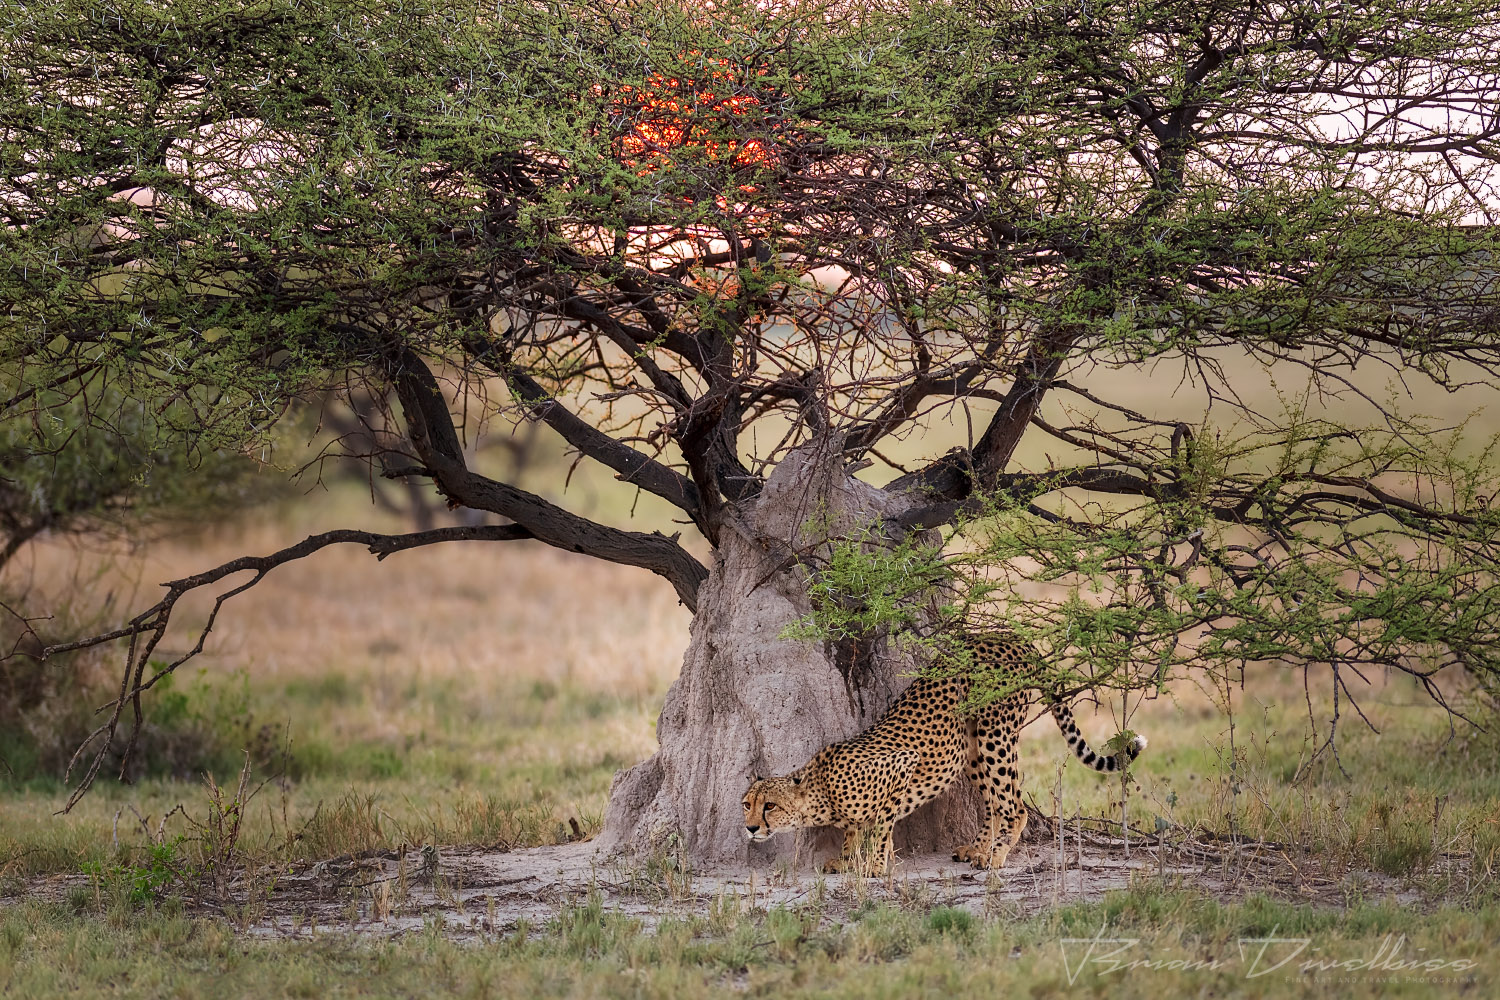 Iconic image of cheetah in front of a termite mound with the rising sun shining through the branches of an acacia tree.